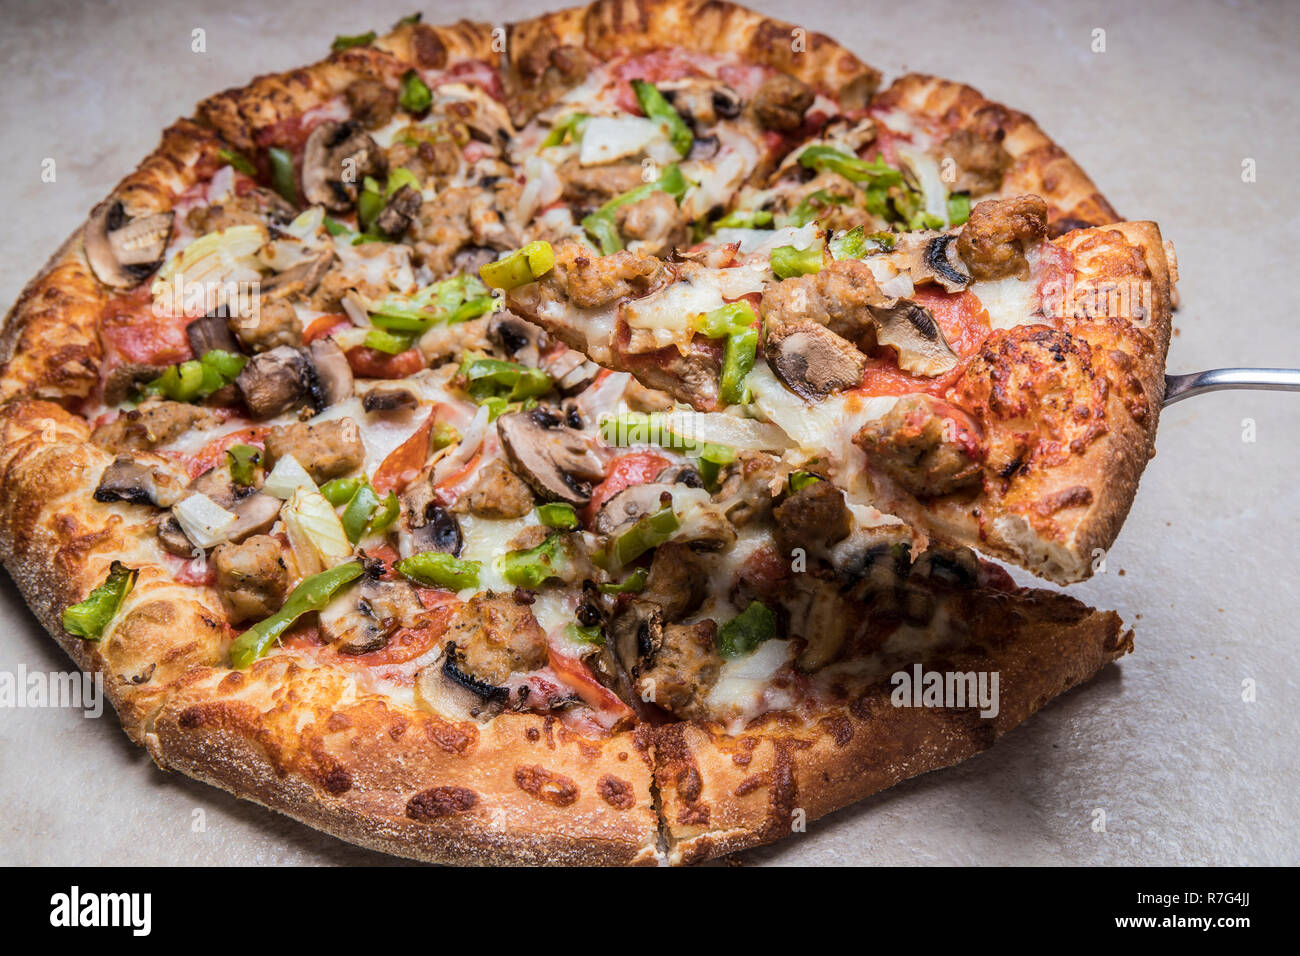 Deluxe Uno Pizza With Cheesegreen Peppersitalian Sausage